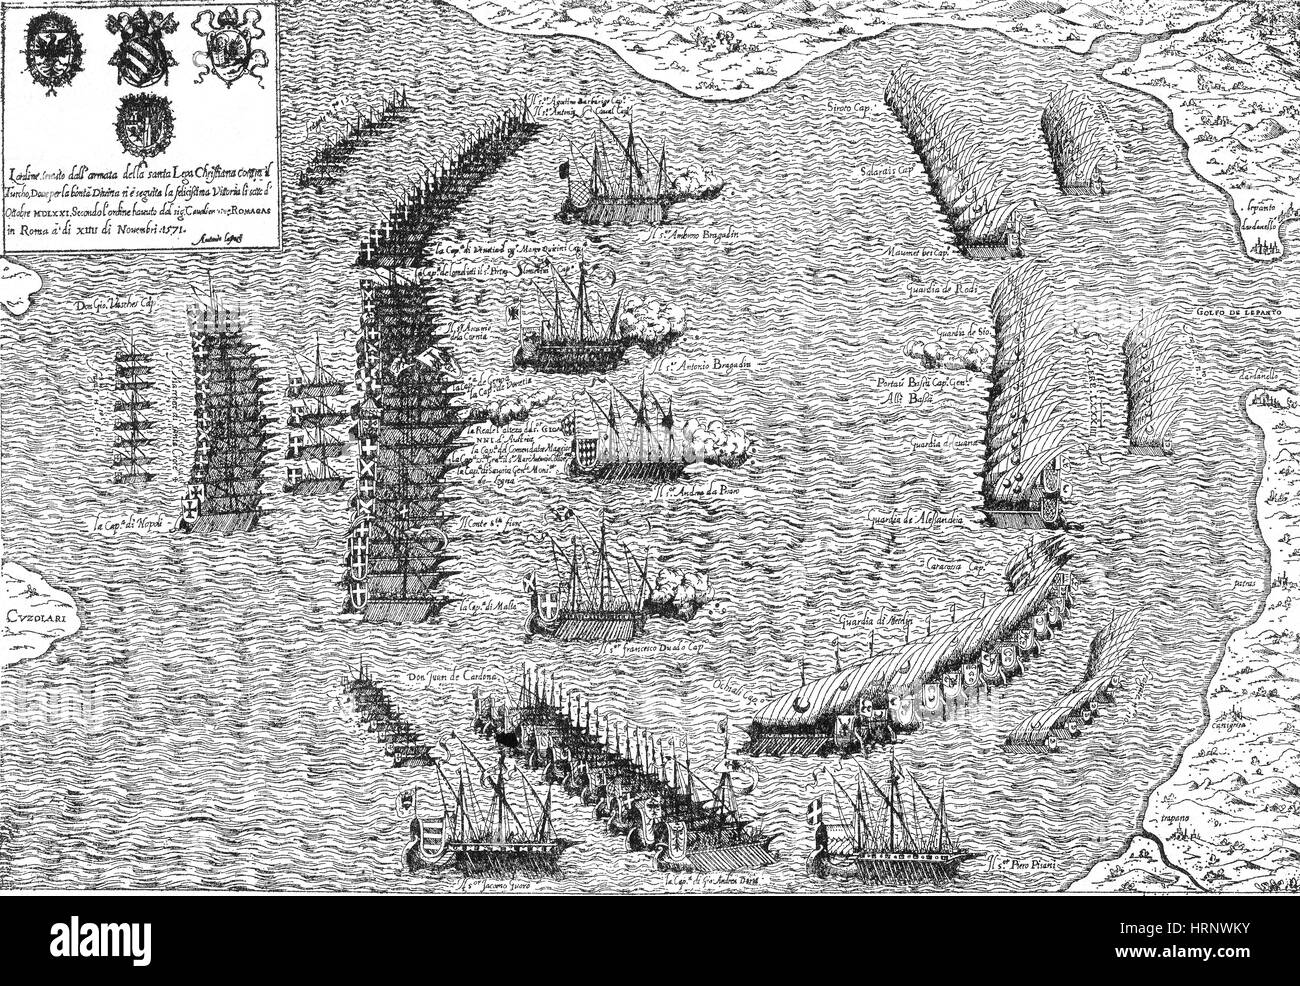 Battle of Lepanto, 1571 - Stock Image